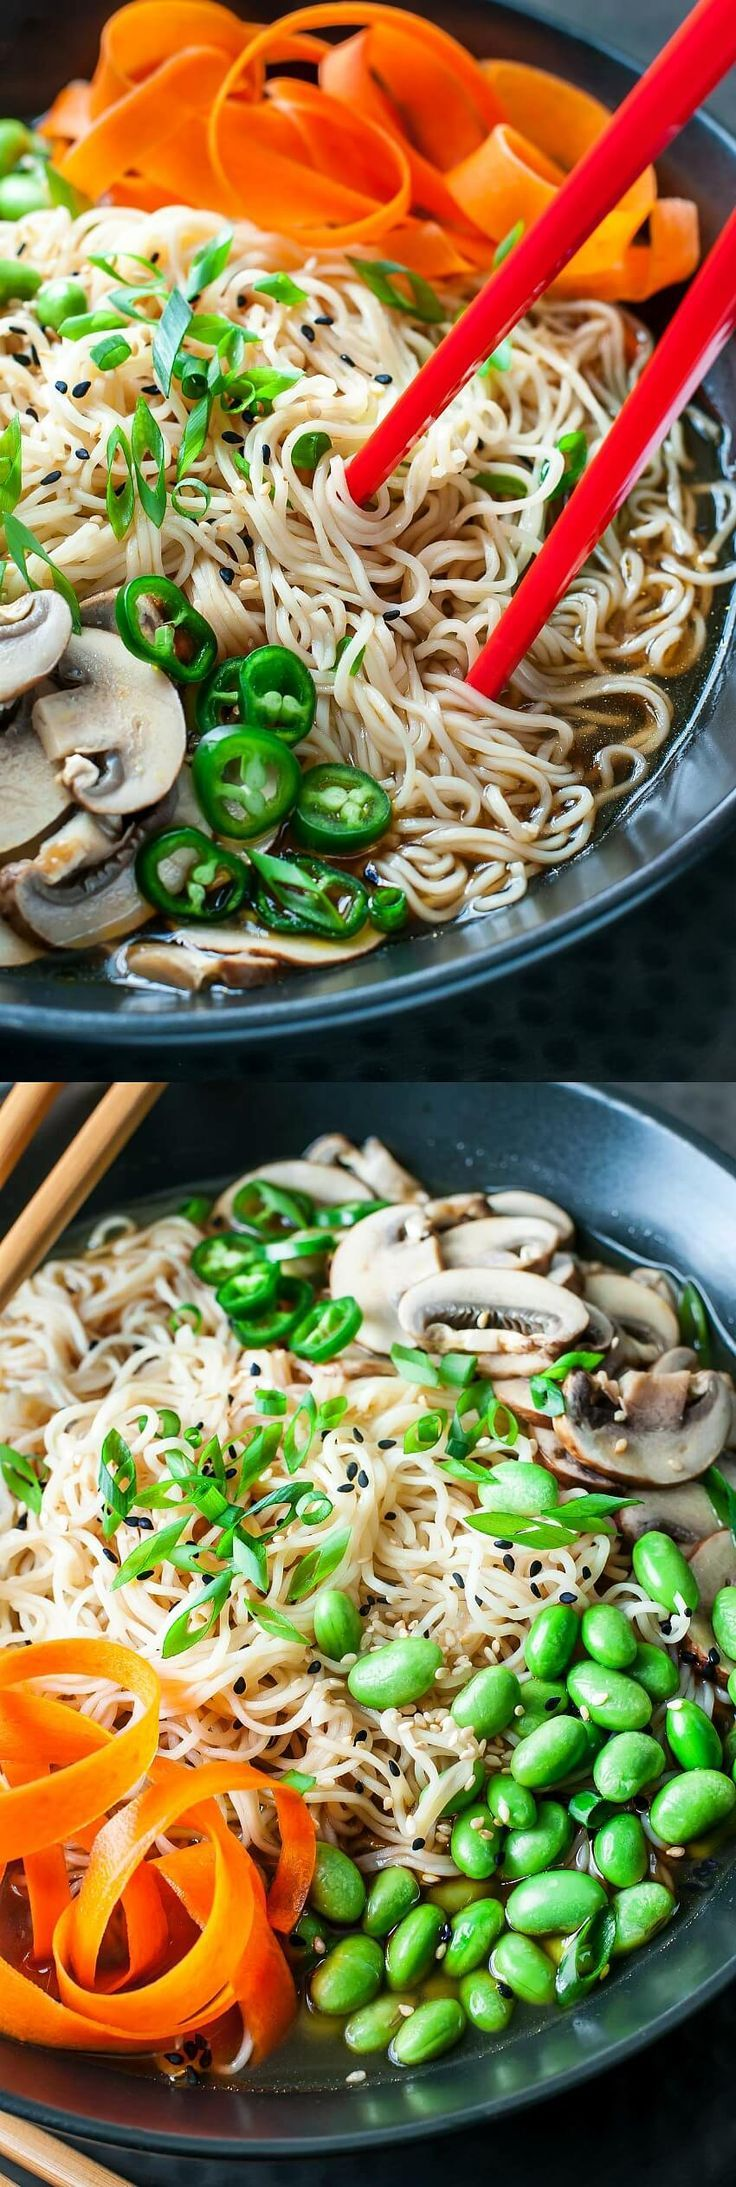 These healthy, hearty Vegan Ramen Bowls with Edamame and Mushrooms have an ultra quick trick for a super flavorful broth that tastes slow simmered in a fraction of the time!